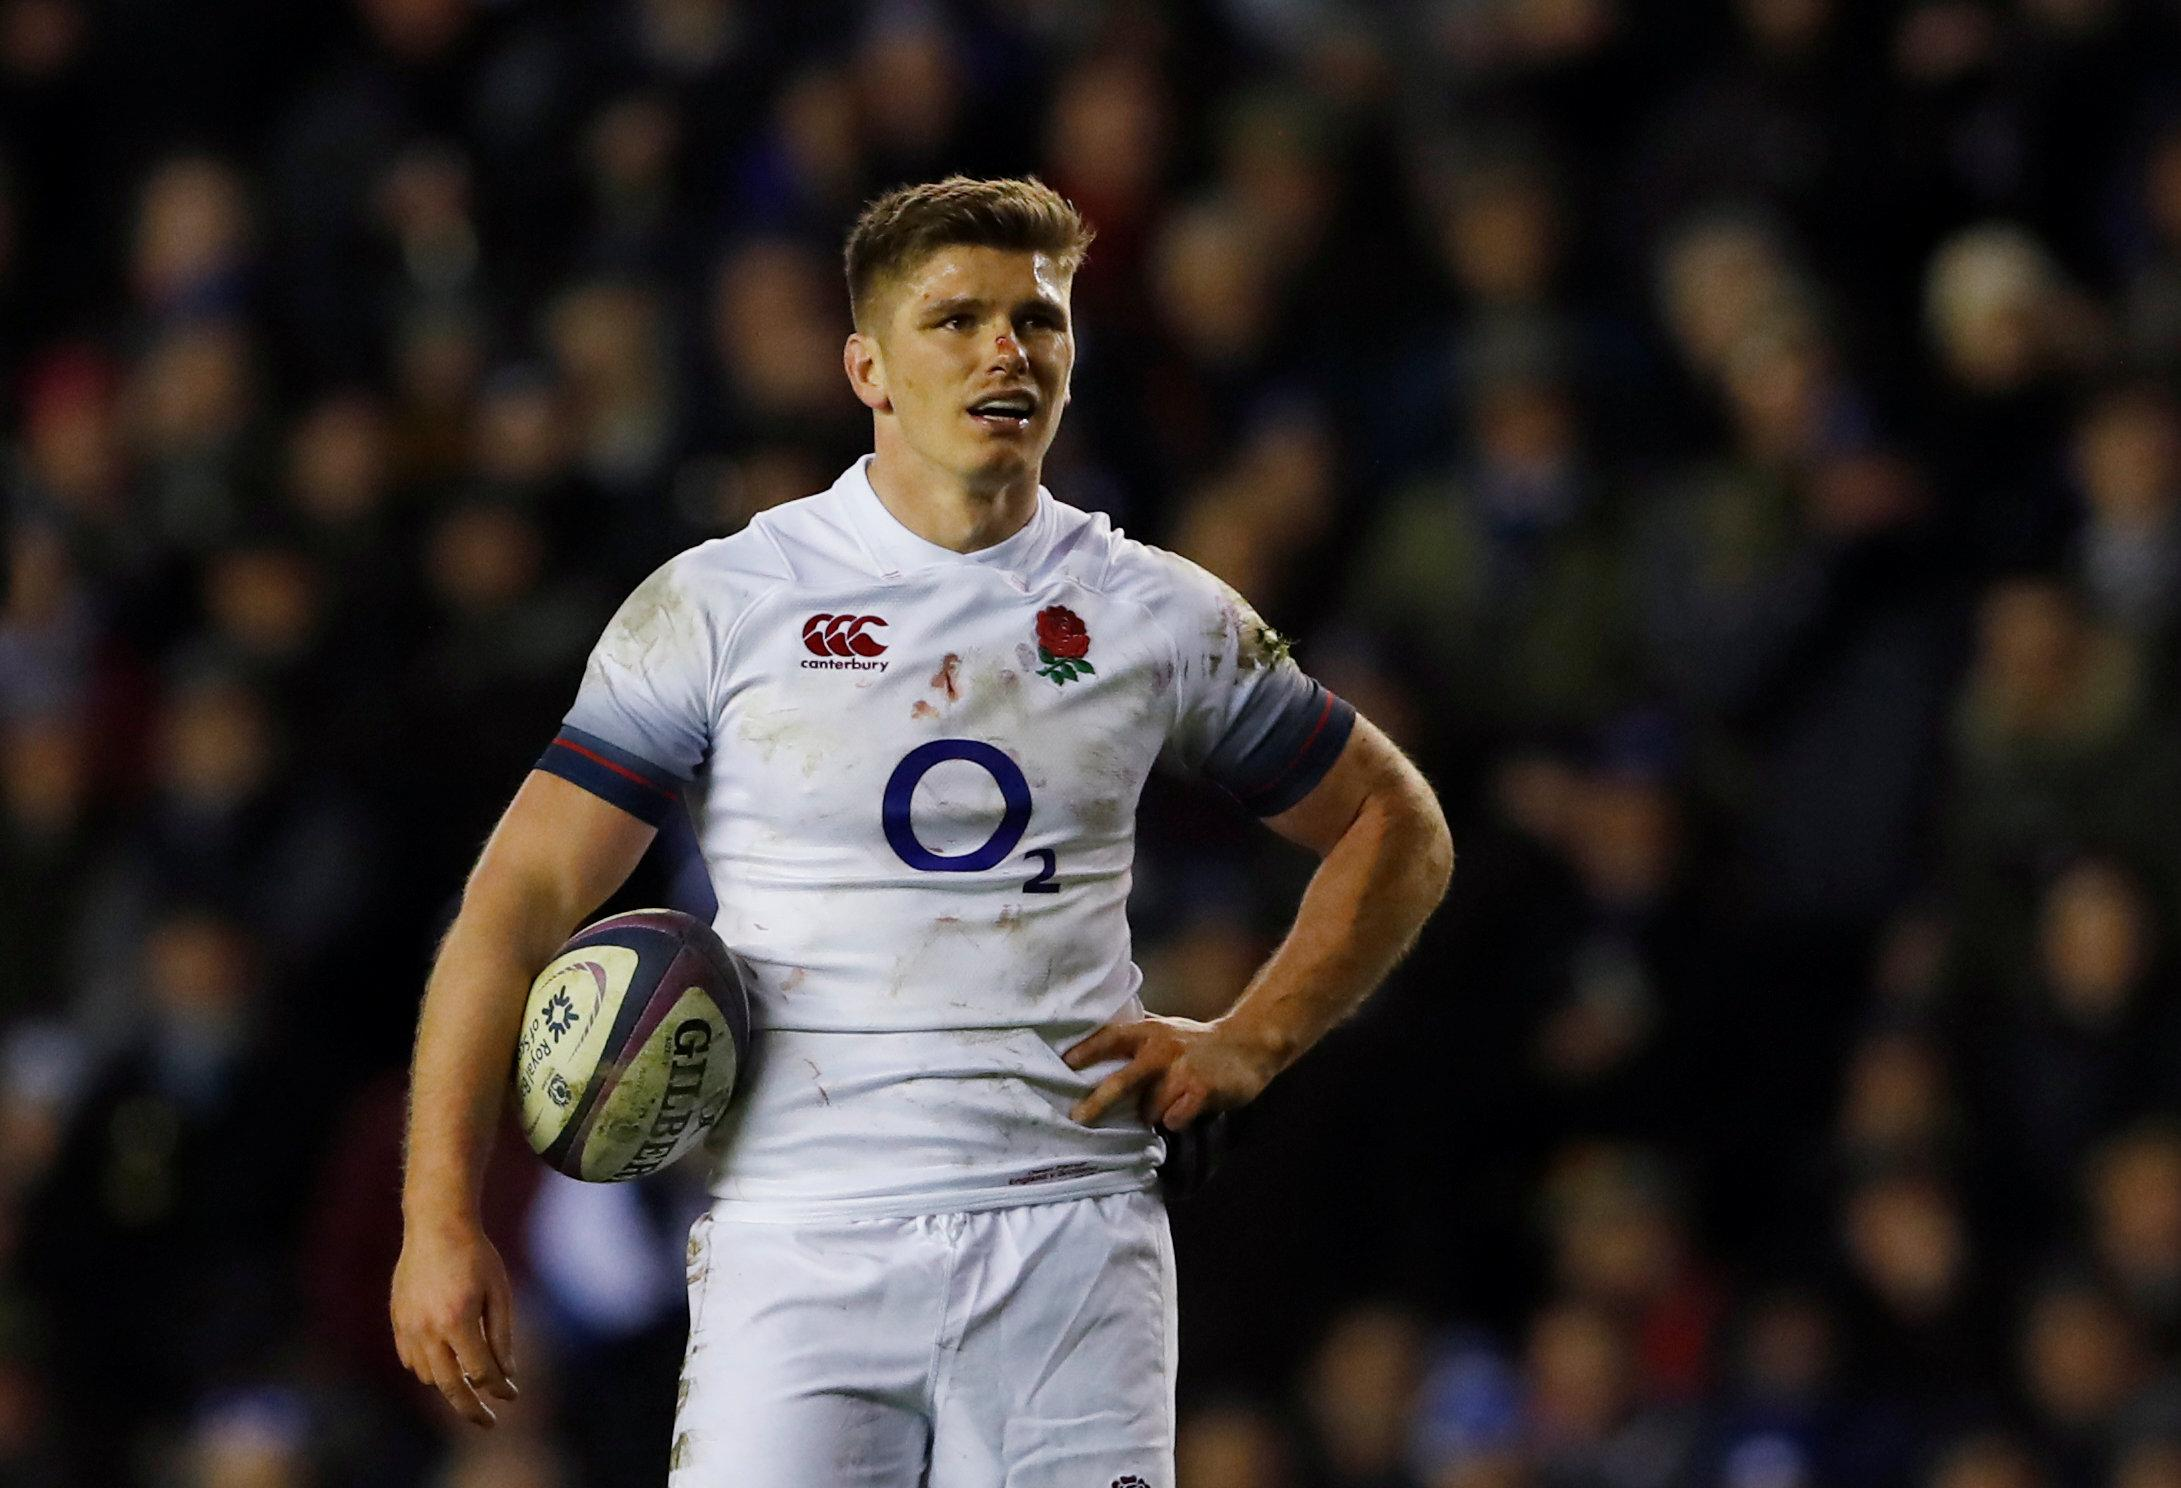 Owen Farrell faces disciplinary probe after he was allegedly involved in a punch-up before Calcutta Cup